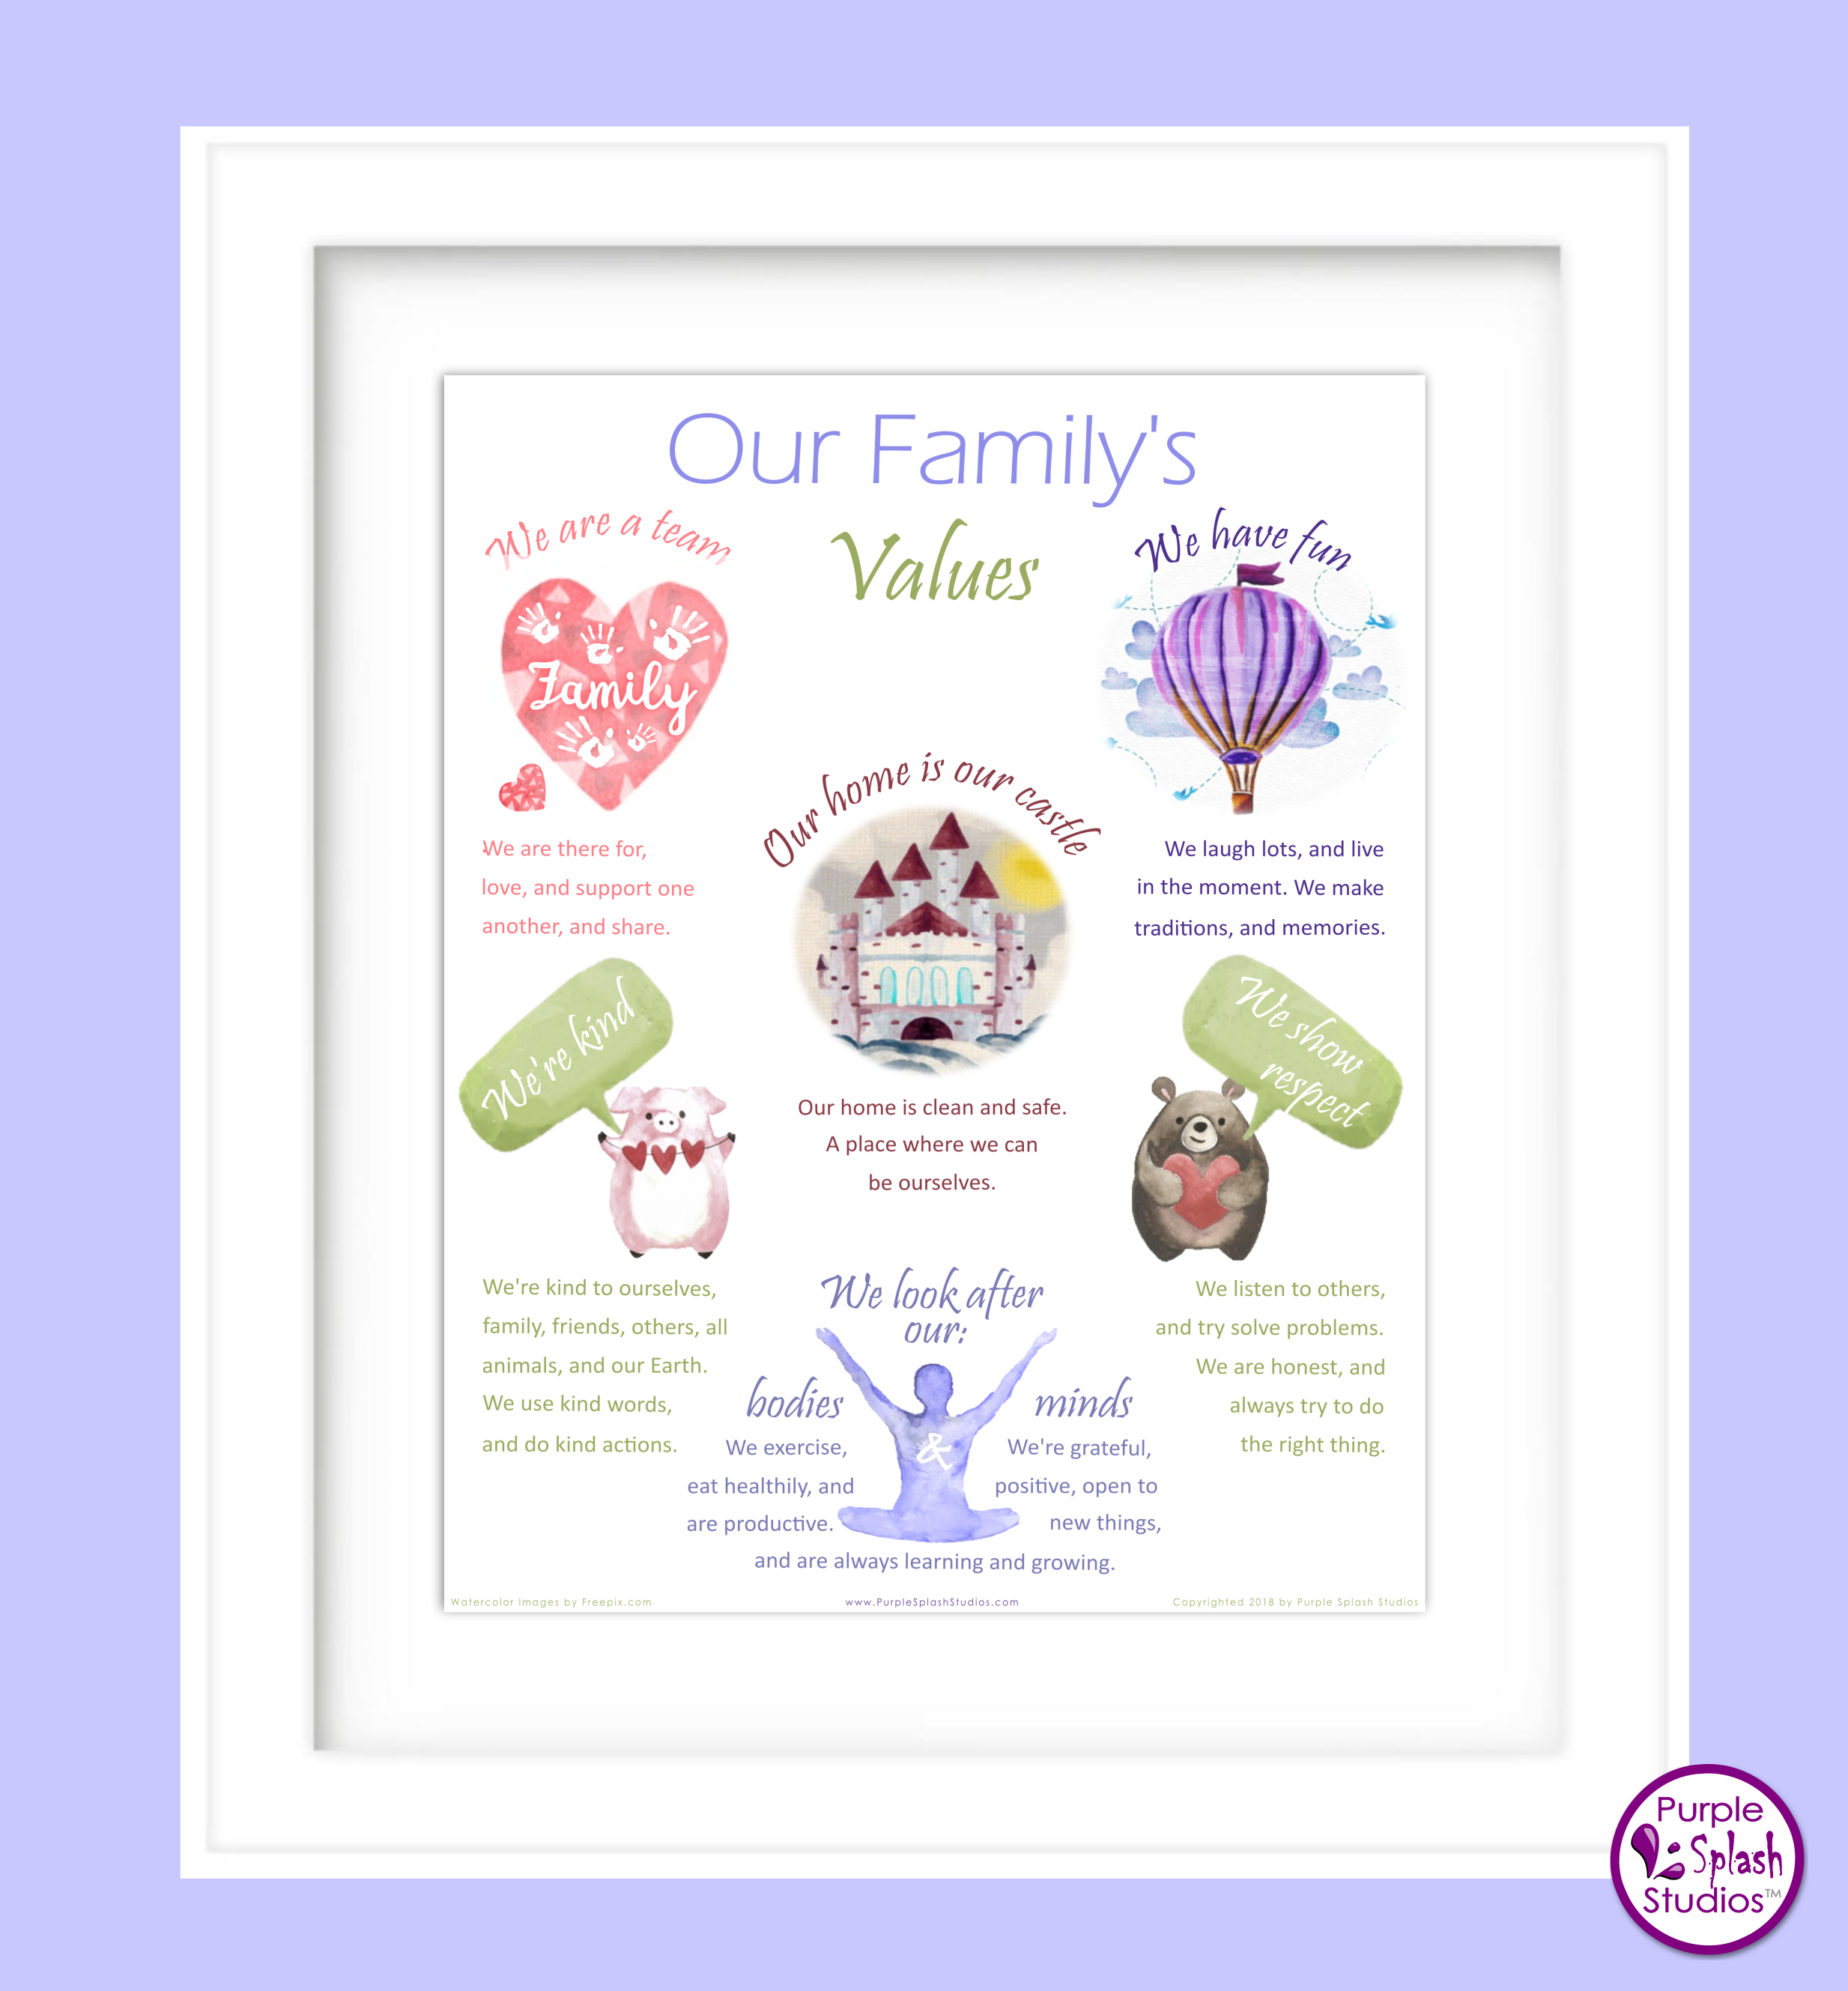 Love This Family Values Poster We Live By It